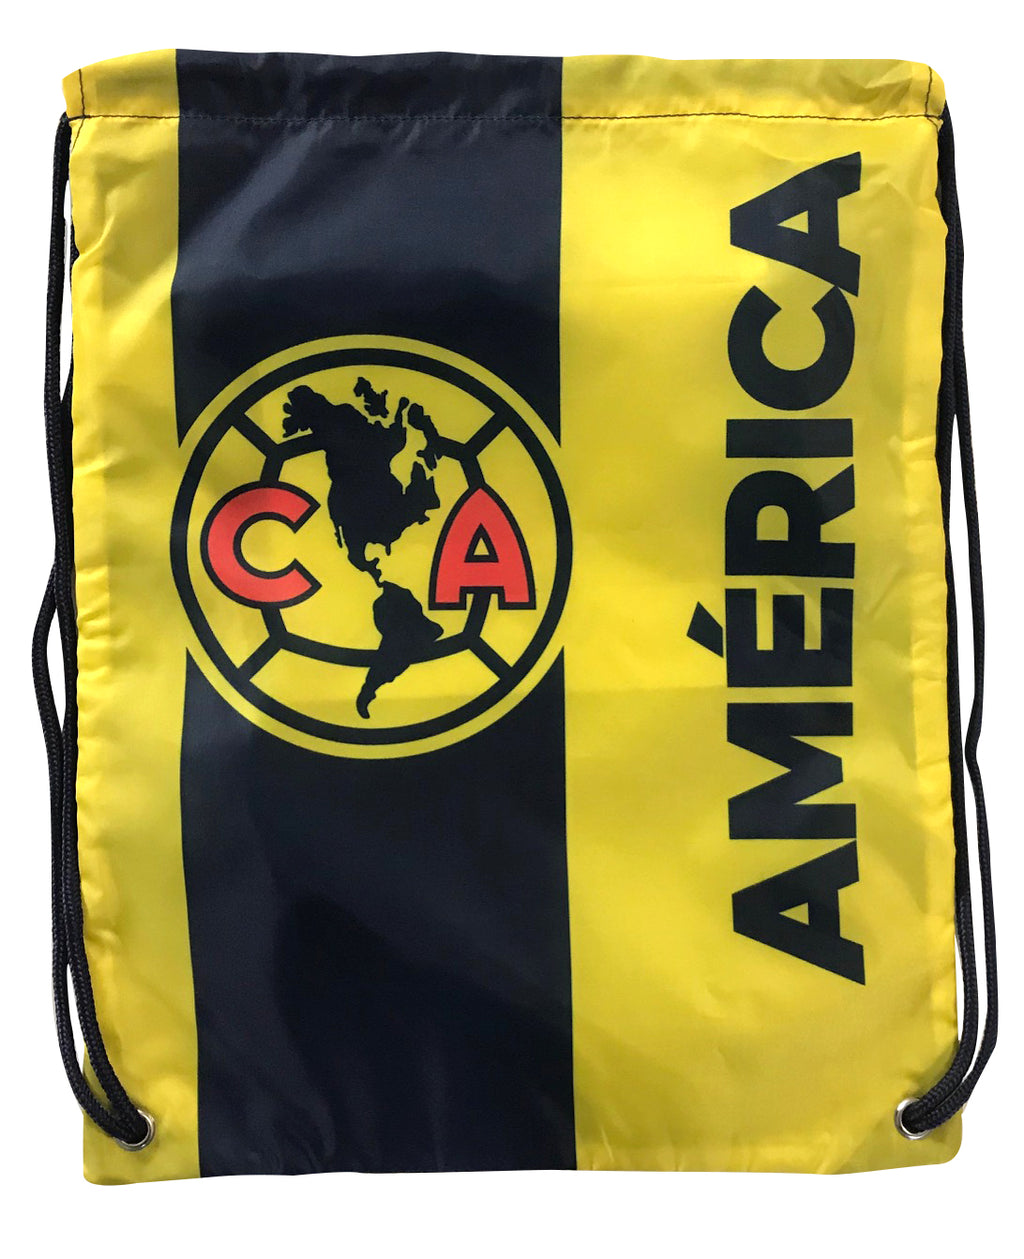 Club América Logo Drawstring Cinch Bag